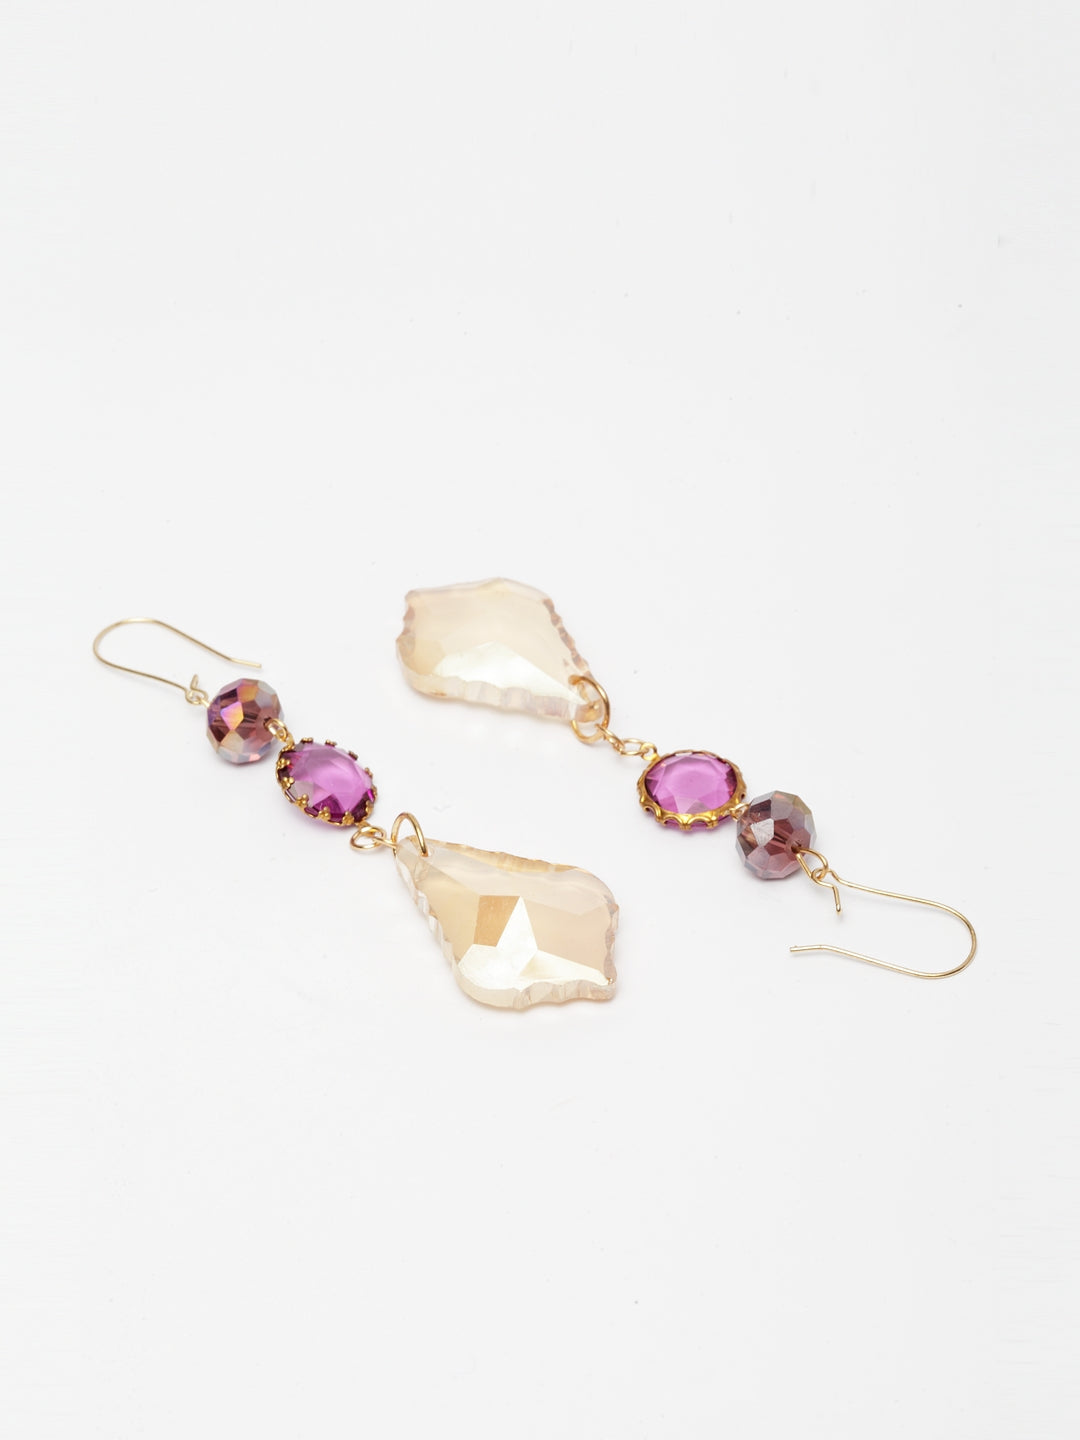 Avant-Garde Paris Bling Crystal Dew Drop Earrings